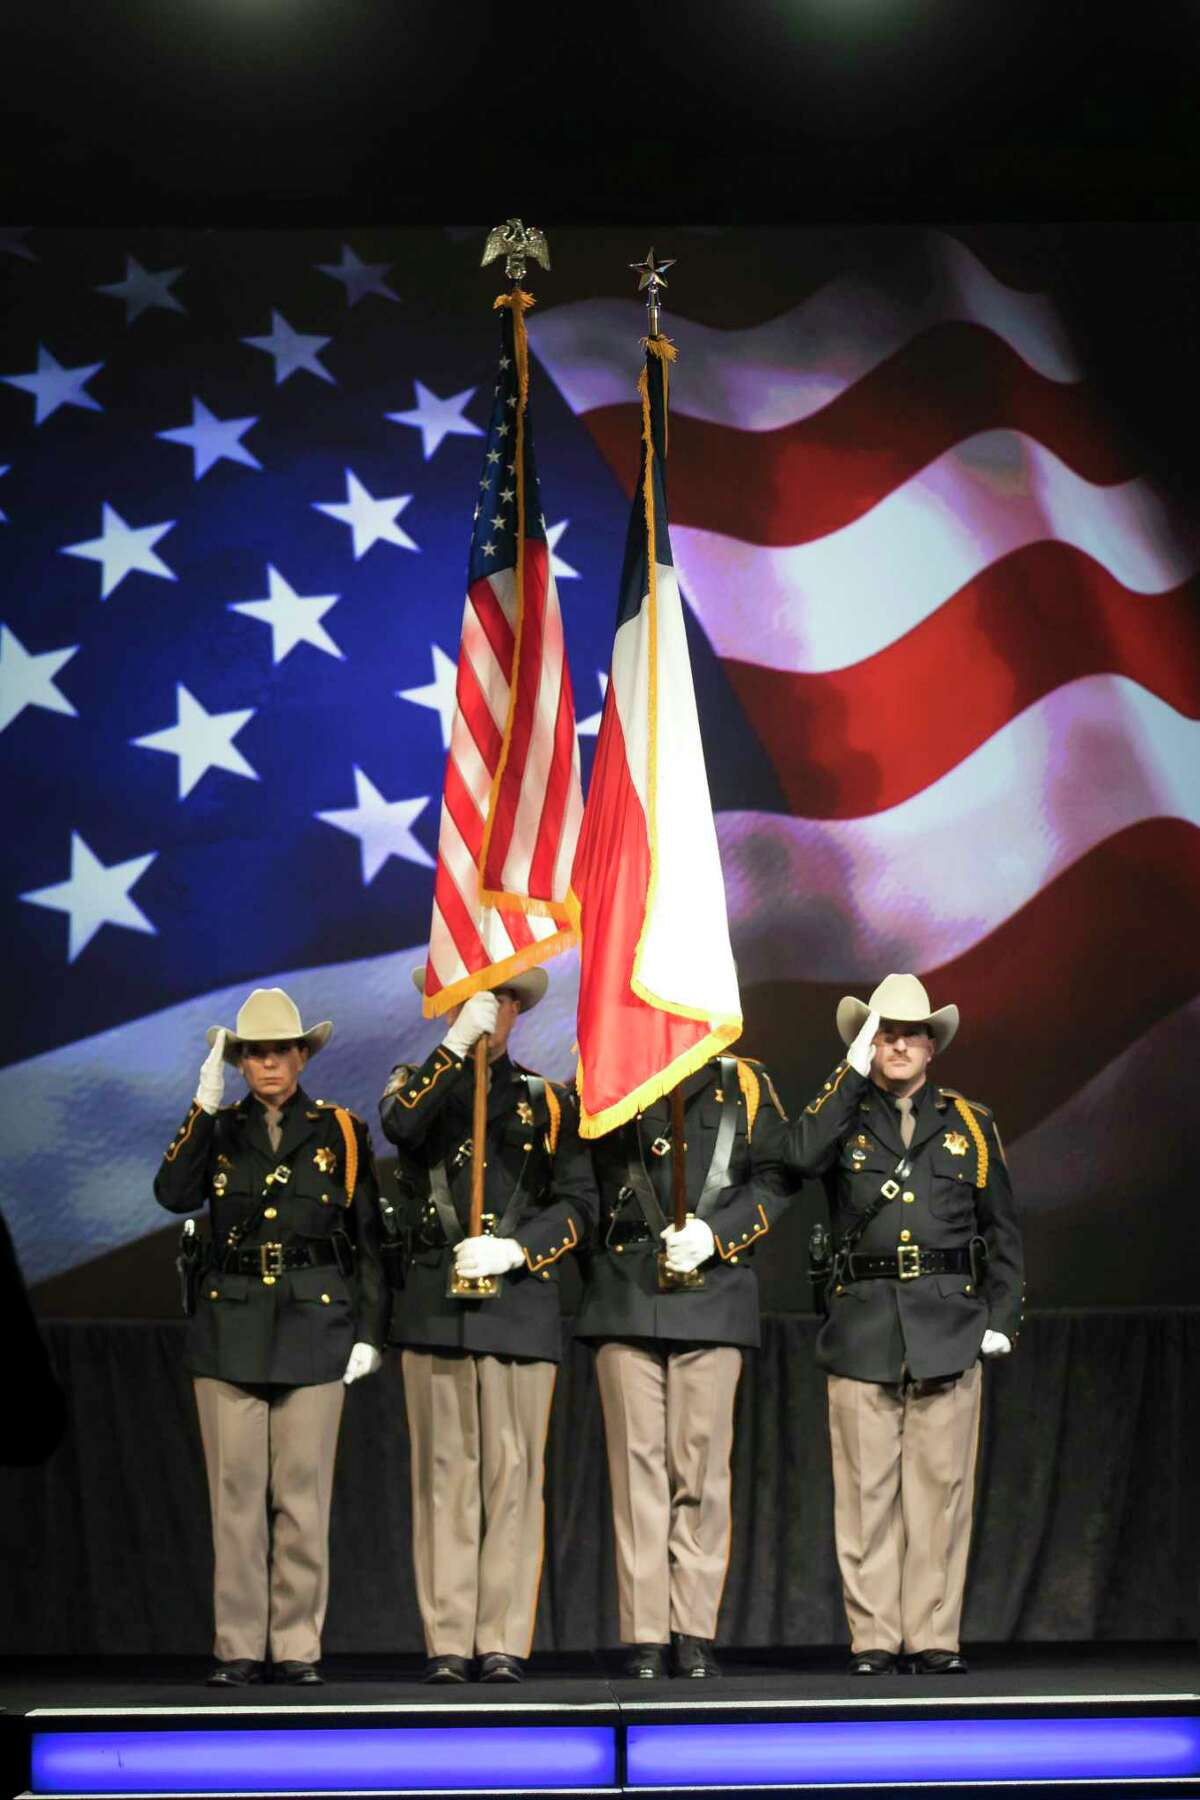 The Presentation of Colors during Harris County Judge Lina Hidalgo's annual State of the County address on Friday, Nov. 15, 2019, in downtown Houston.